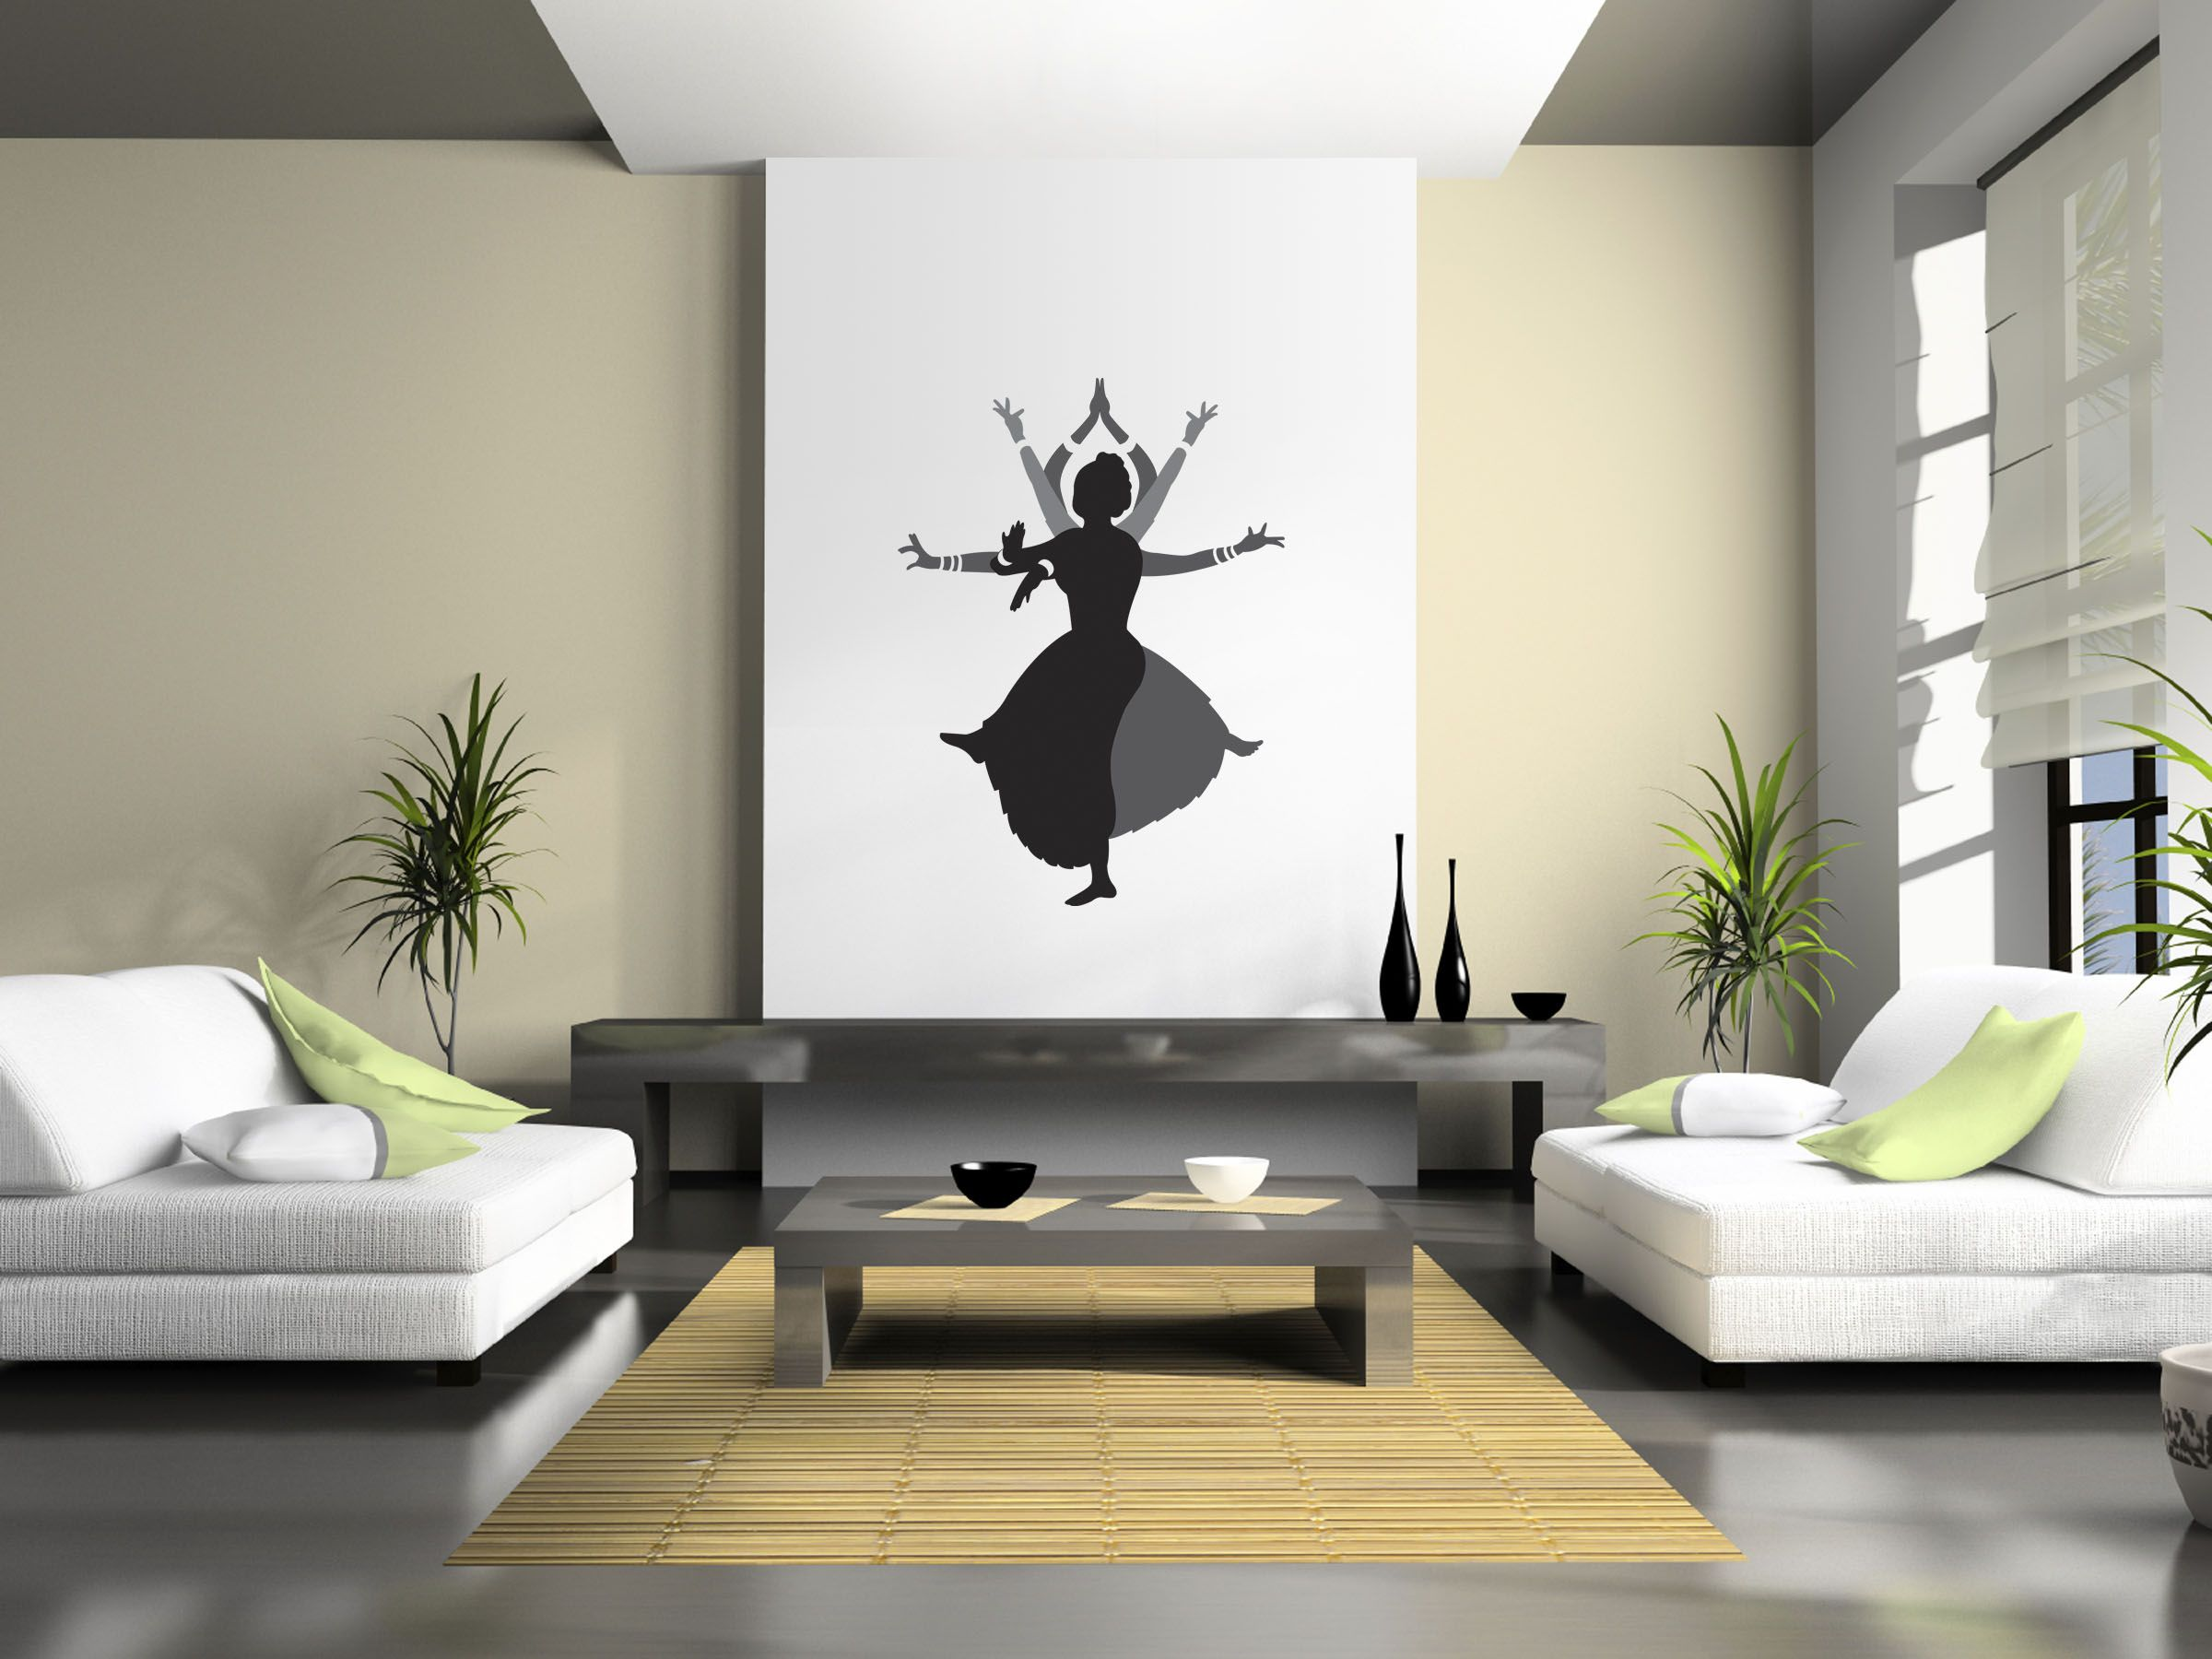 Home interior wall design different strokes  want to know more write to us  deewaristgmail